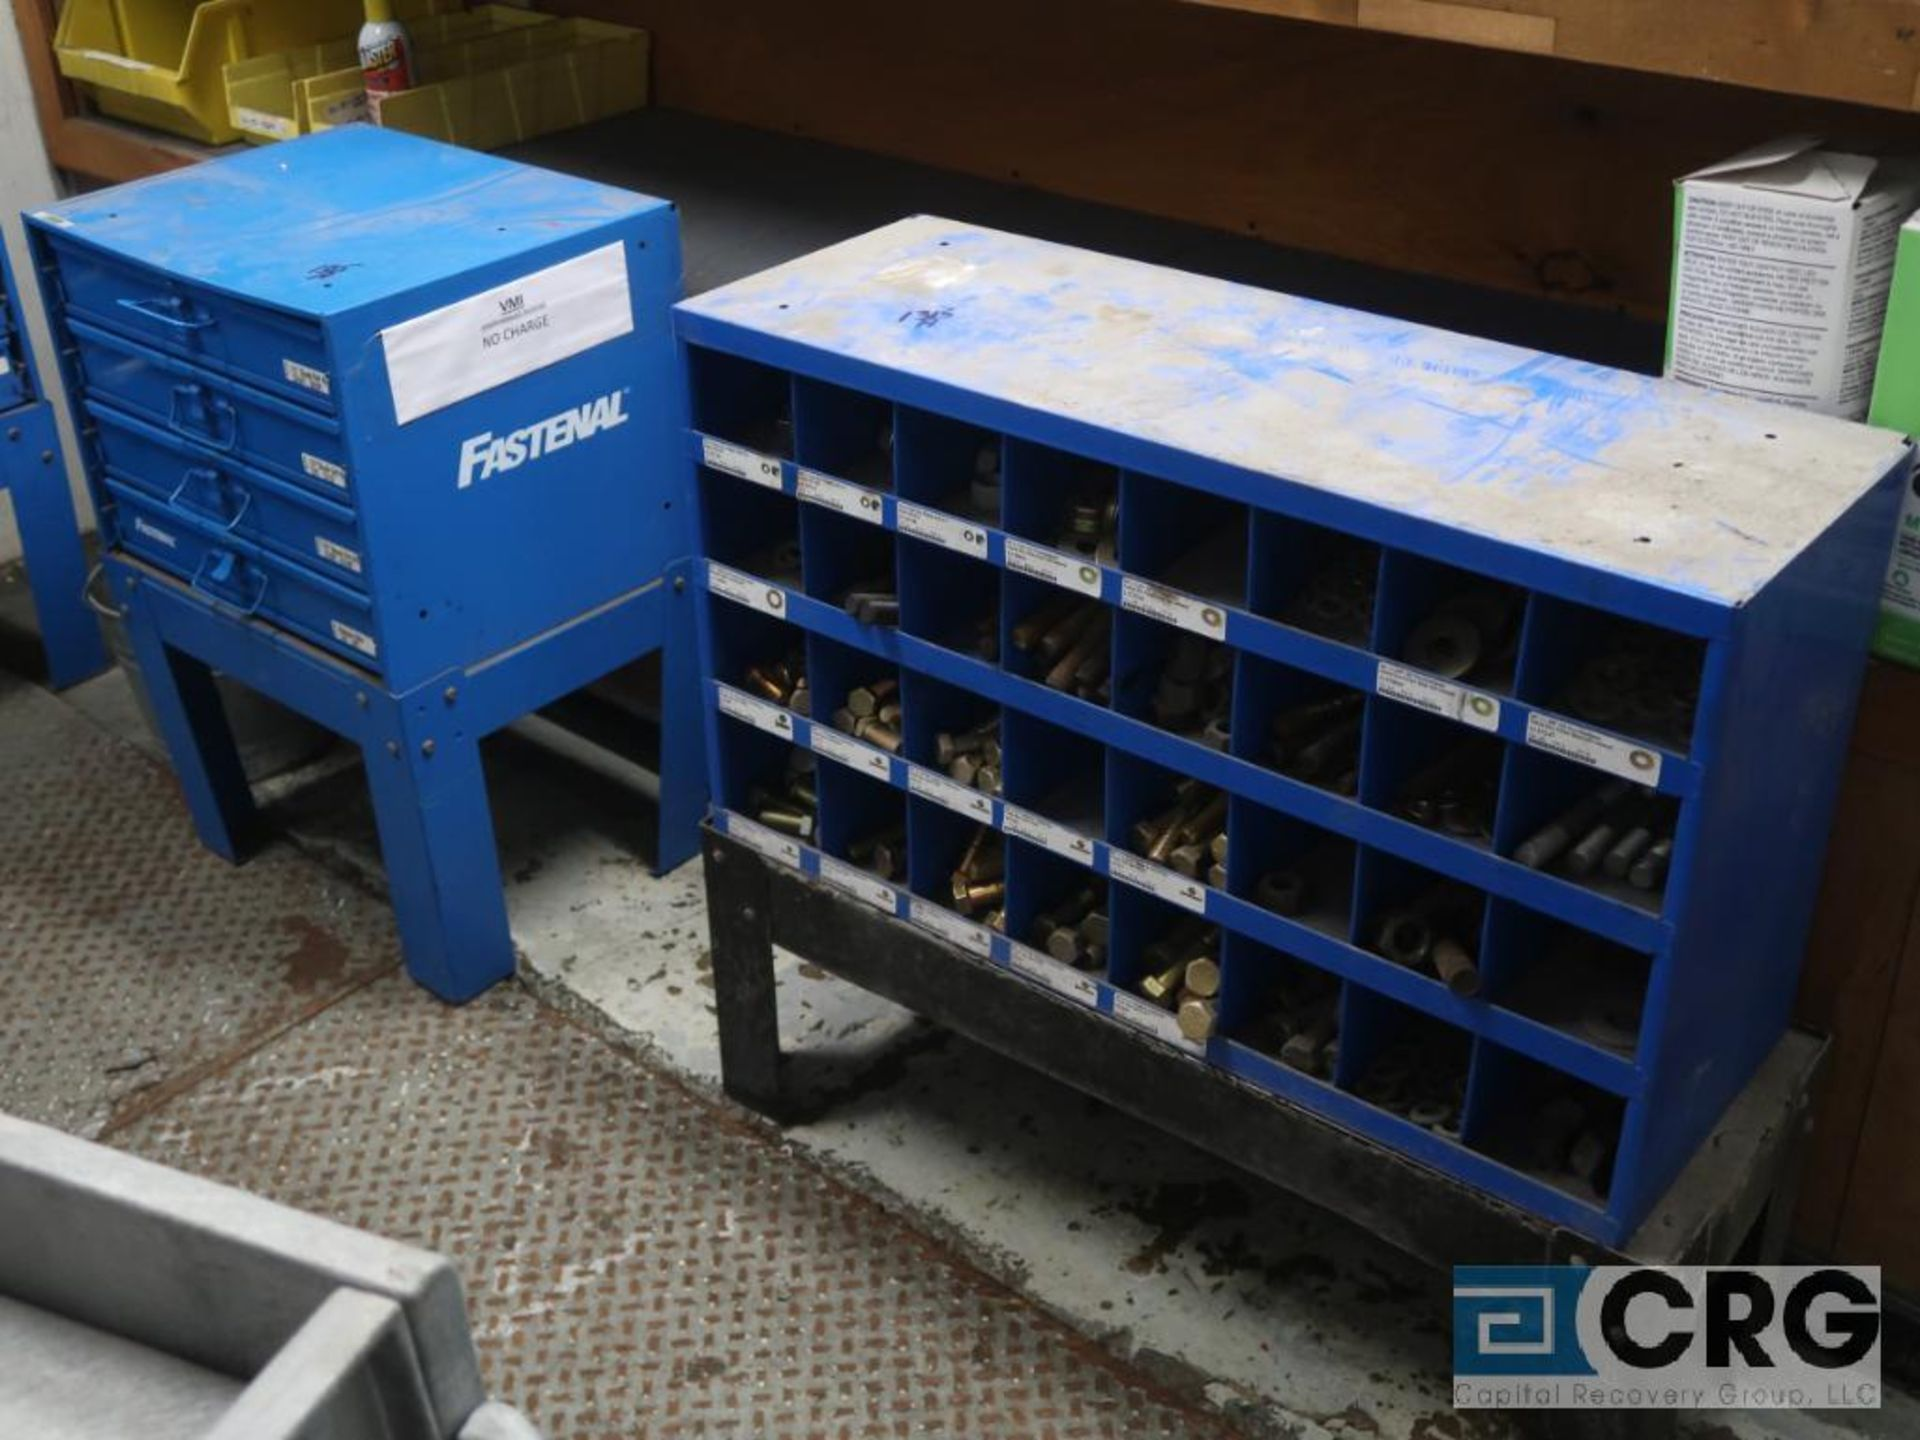 Nut and bolt 4 drawer parts bin with parts including wire, nuts, springs, cotter pins, and bin - Image 3 of 4